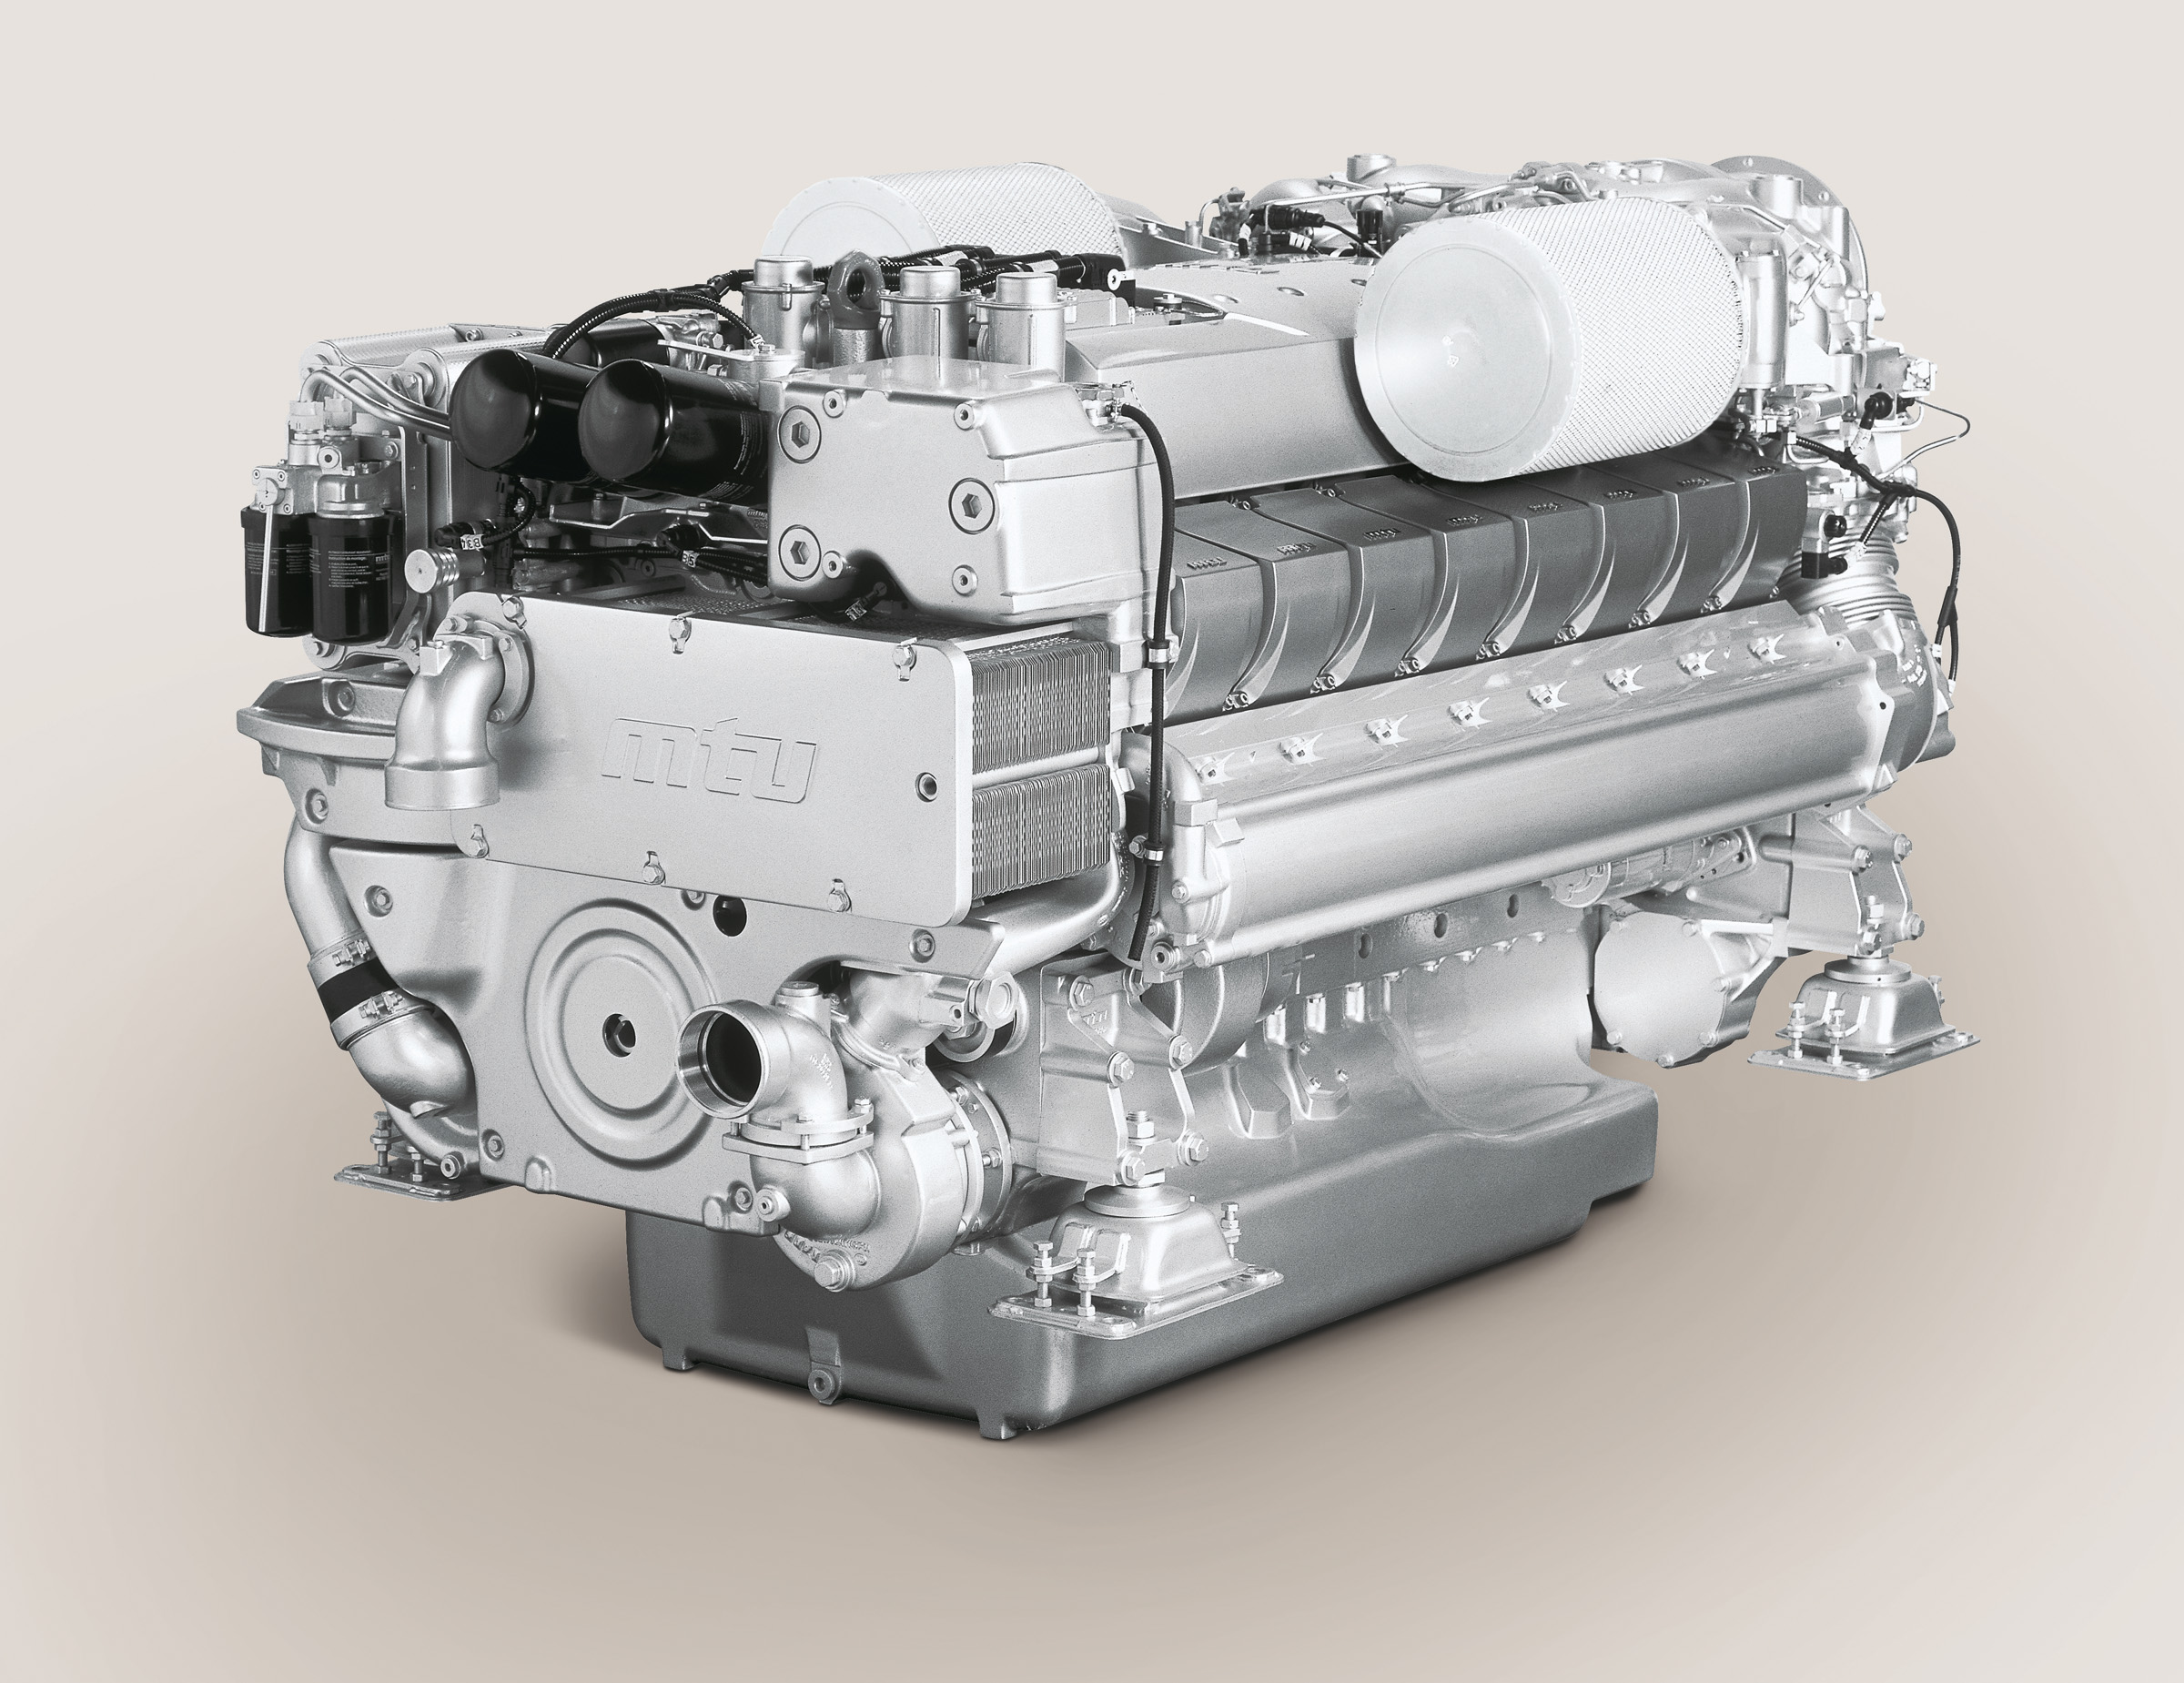 Mtu 16v 2000 M94 Yacht Engine With A Power Output Up To